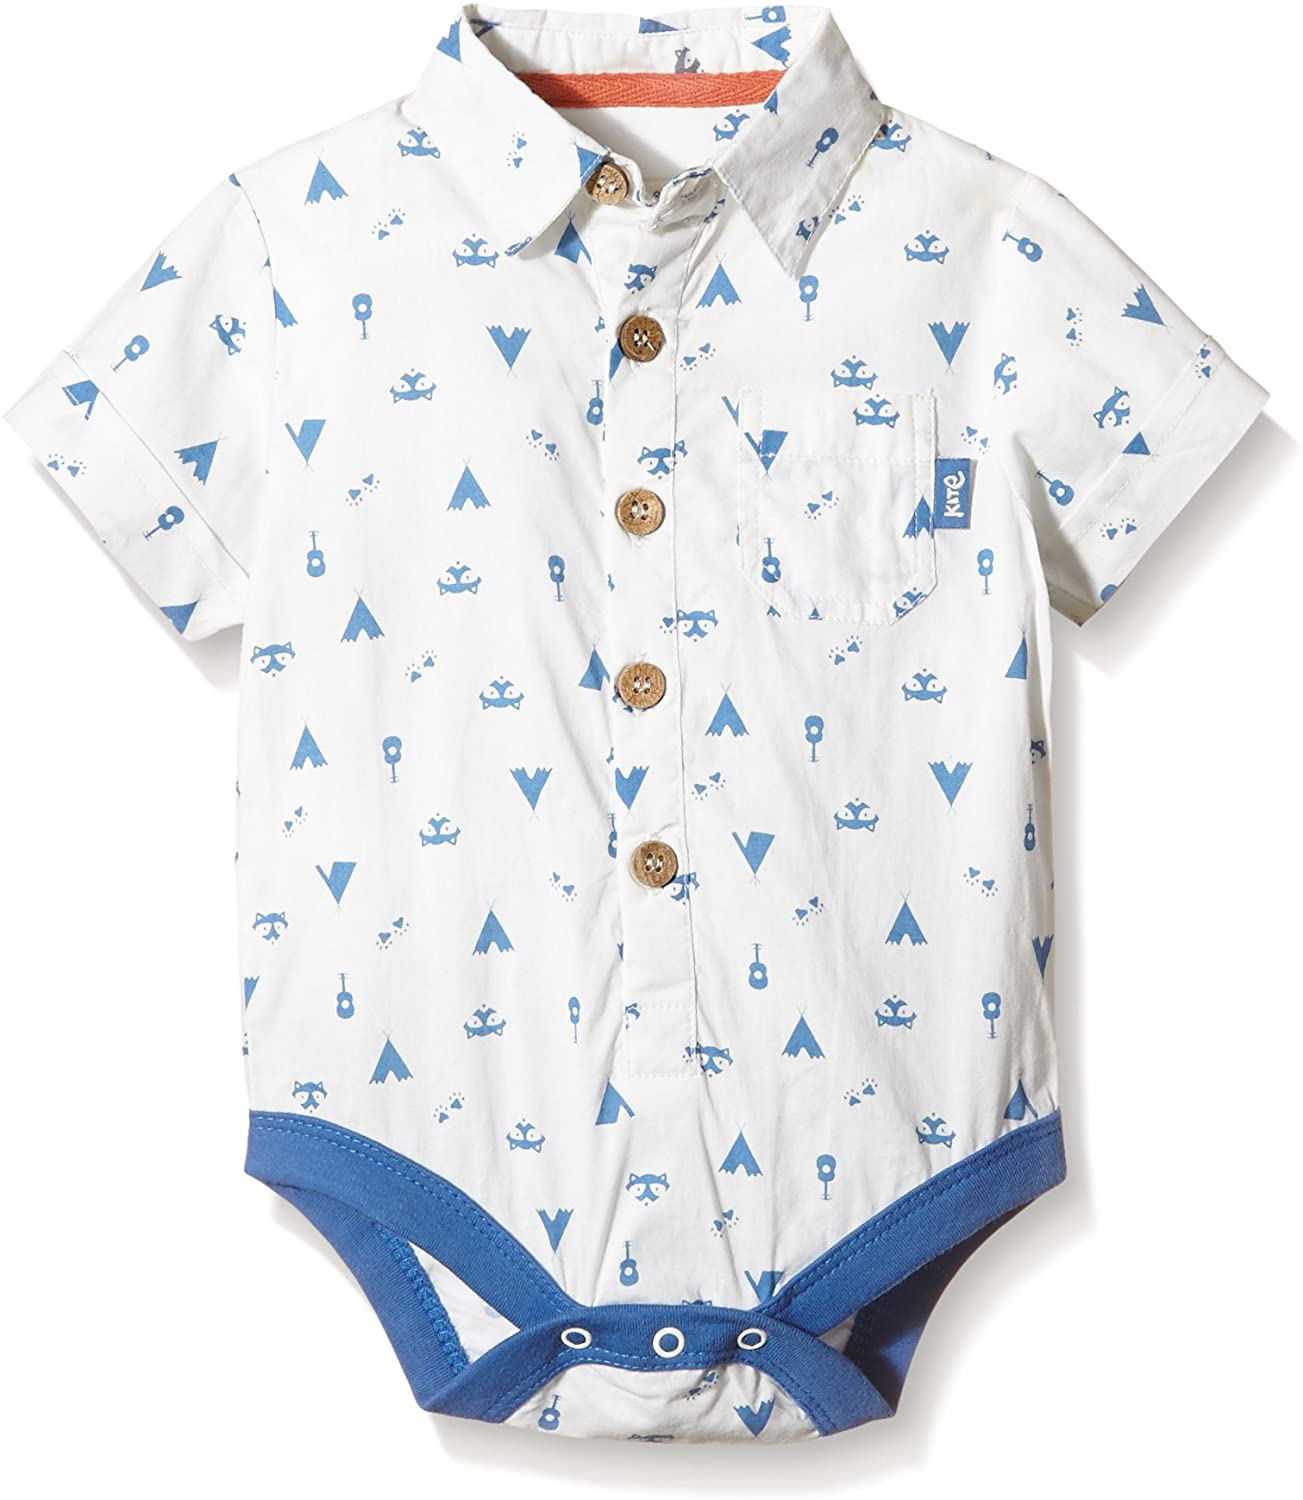 Kite Organic Baby Boy Clothes - Camping Body-Shirt, 18-24 Months / 2-3 Years Old